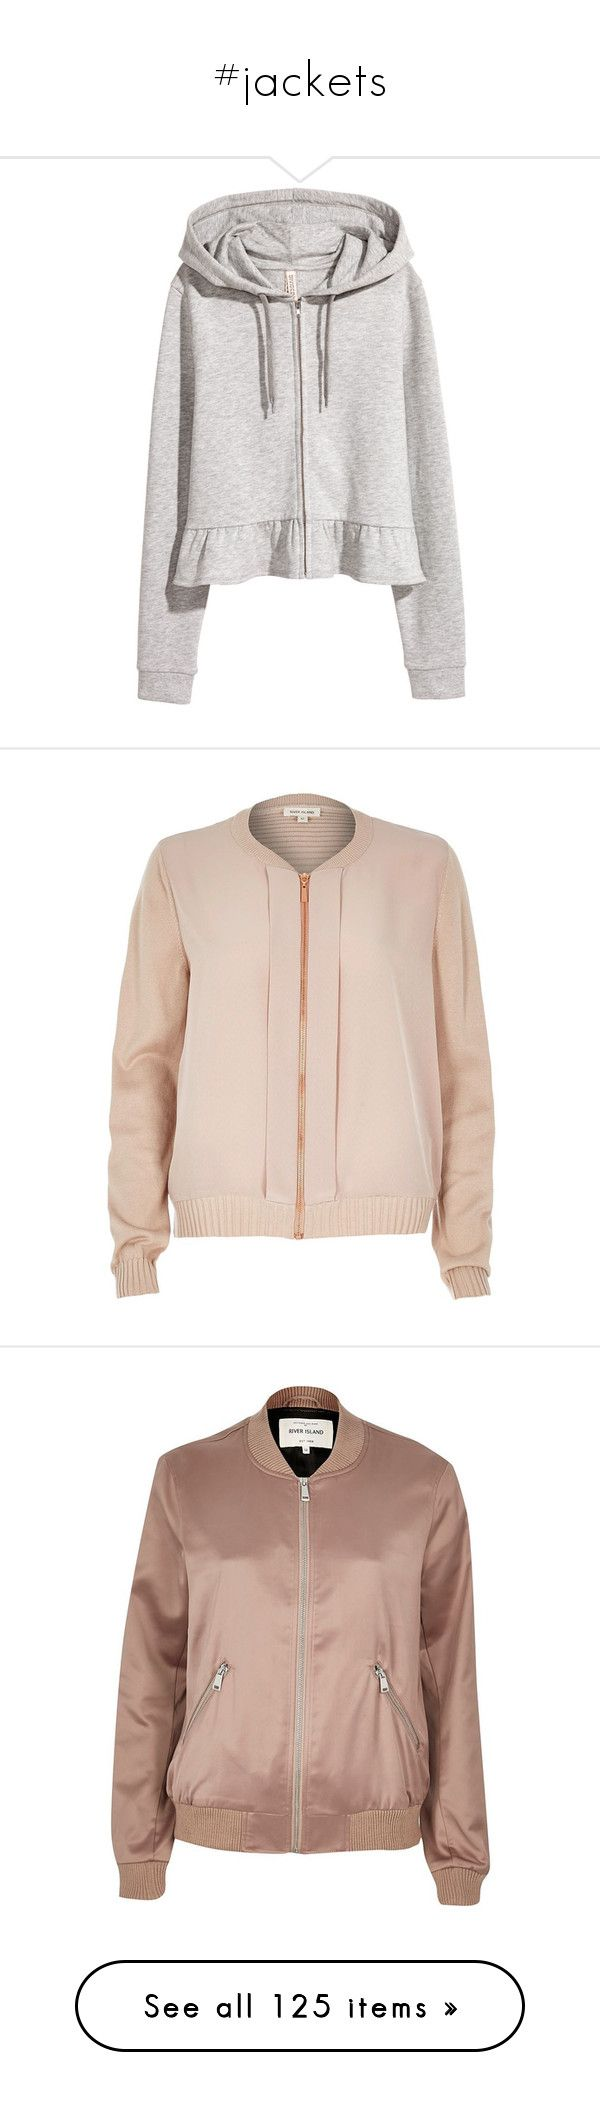 """#jackets"" by littleluxusfashionista ❤ liked on Polyvore featuring tops, hoodies, outerwear, jackets, coats / jackets, nude, women, woven bomber jacket, pink jacket and woven jacket"